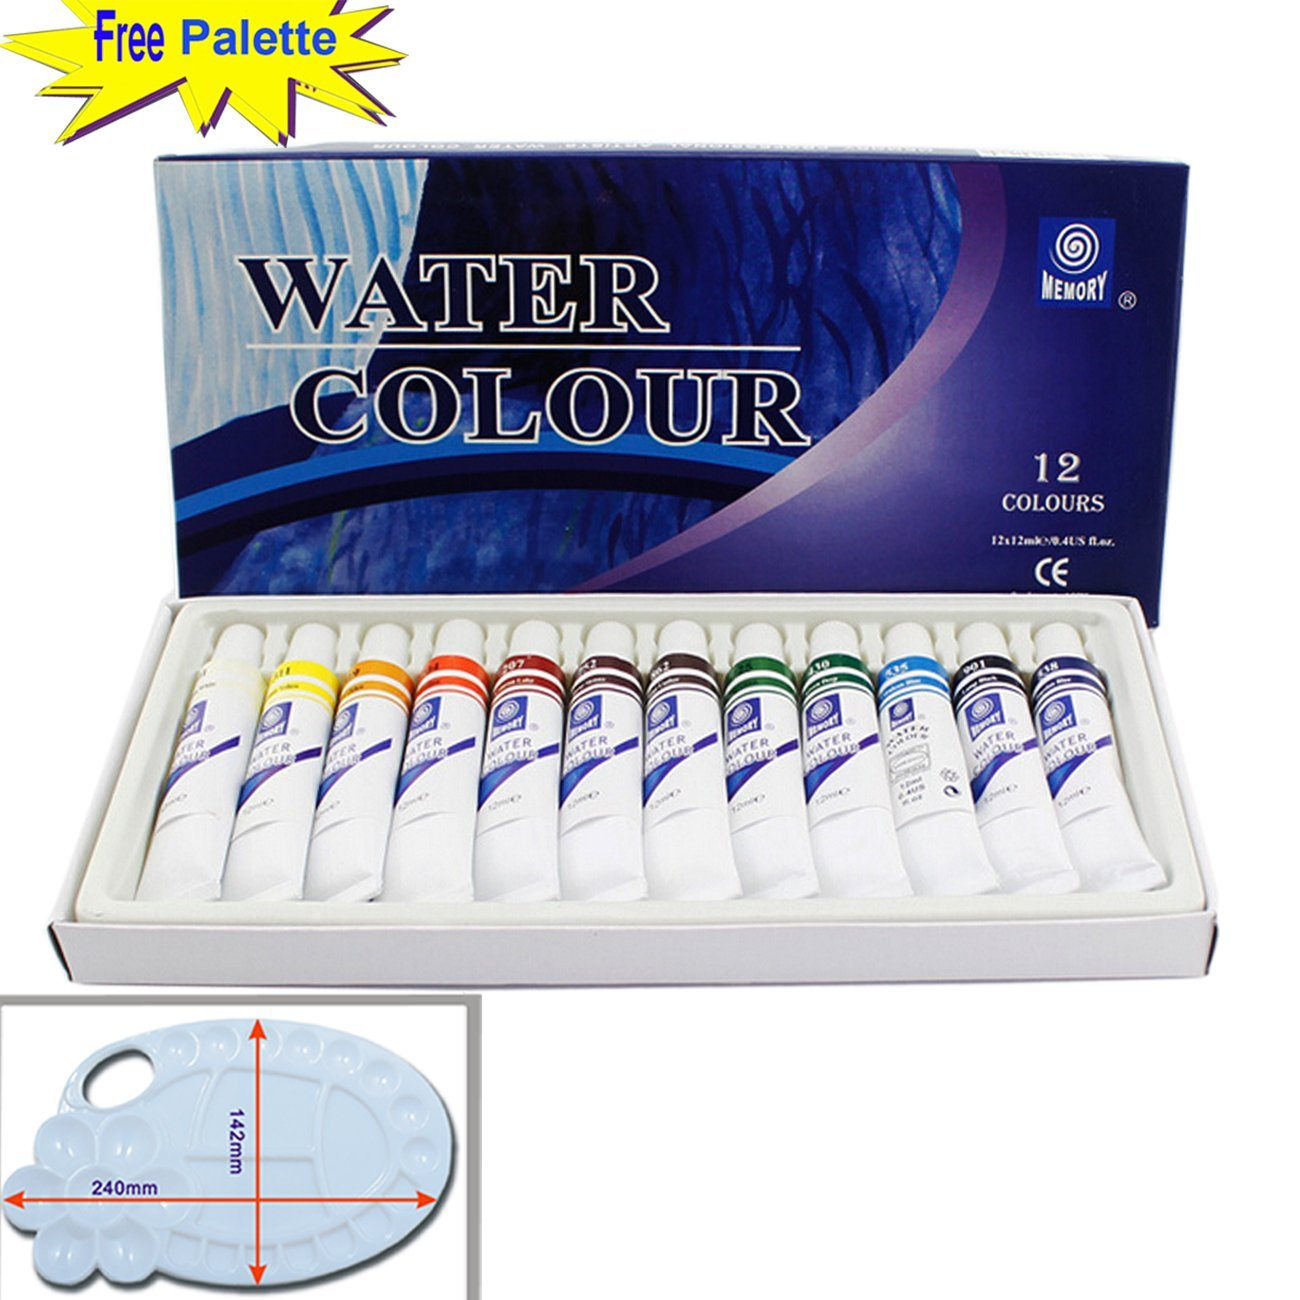 Magicdo 12 Cols professional Watercolor Paint Set With Free Palette, Quality Non Toxic Paint, 12ml Heavy, Rich Pigment, Best Selling Color, Suitable for Kids 3+ to Adults (1212ml)